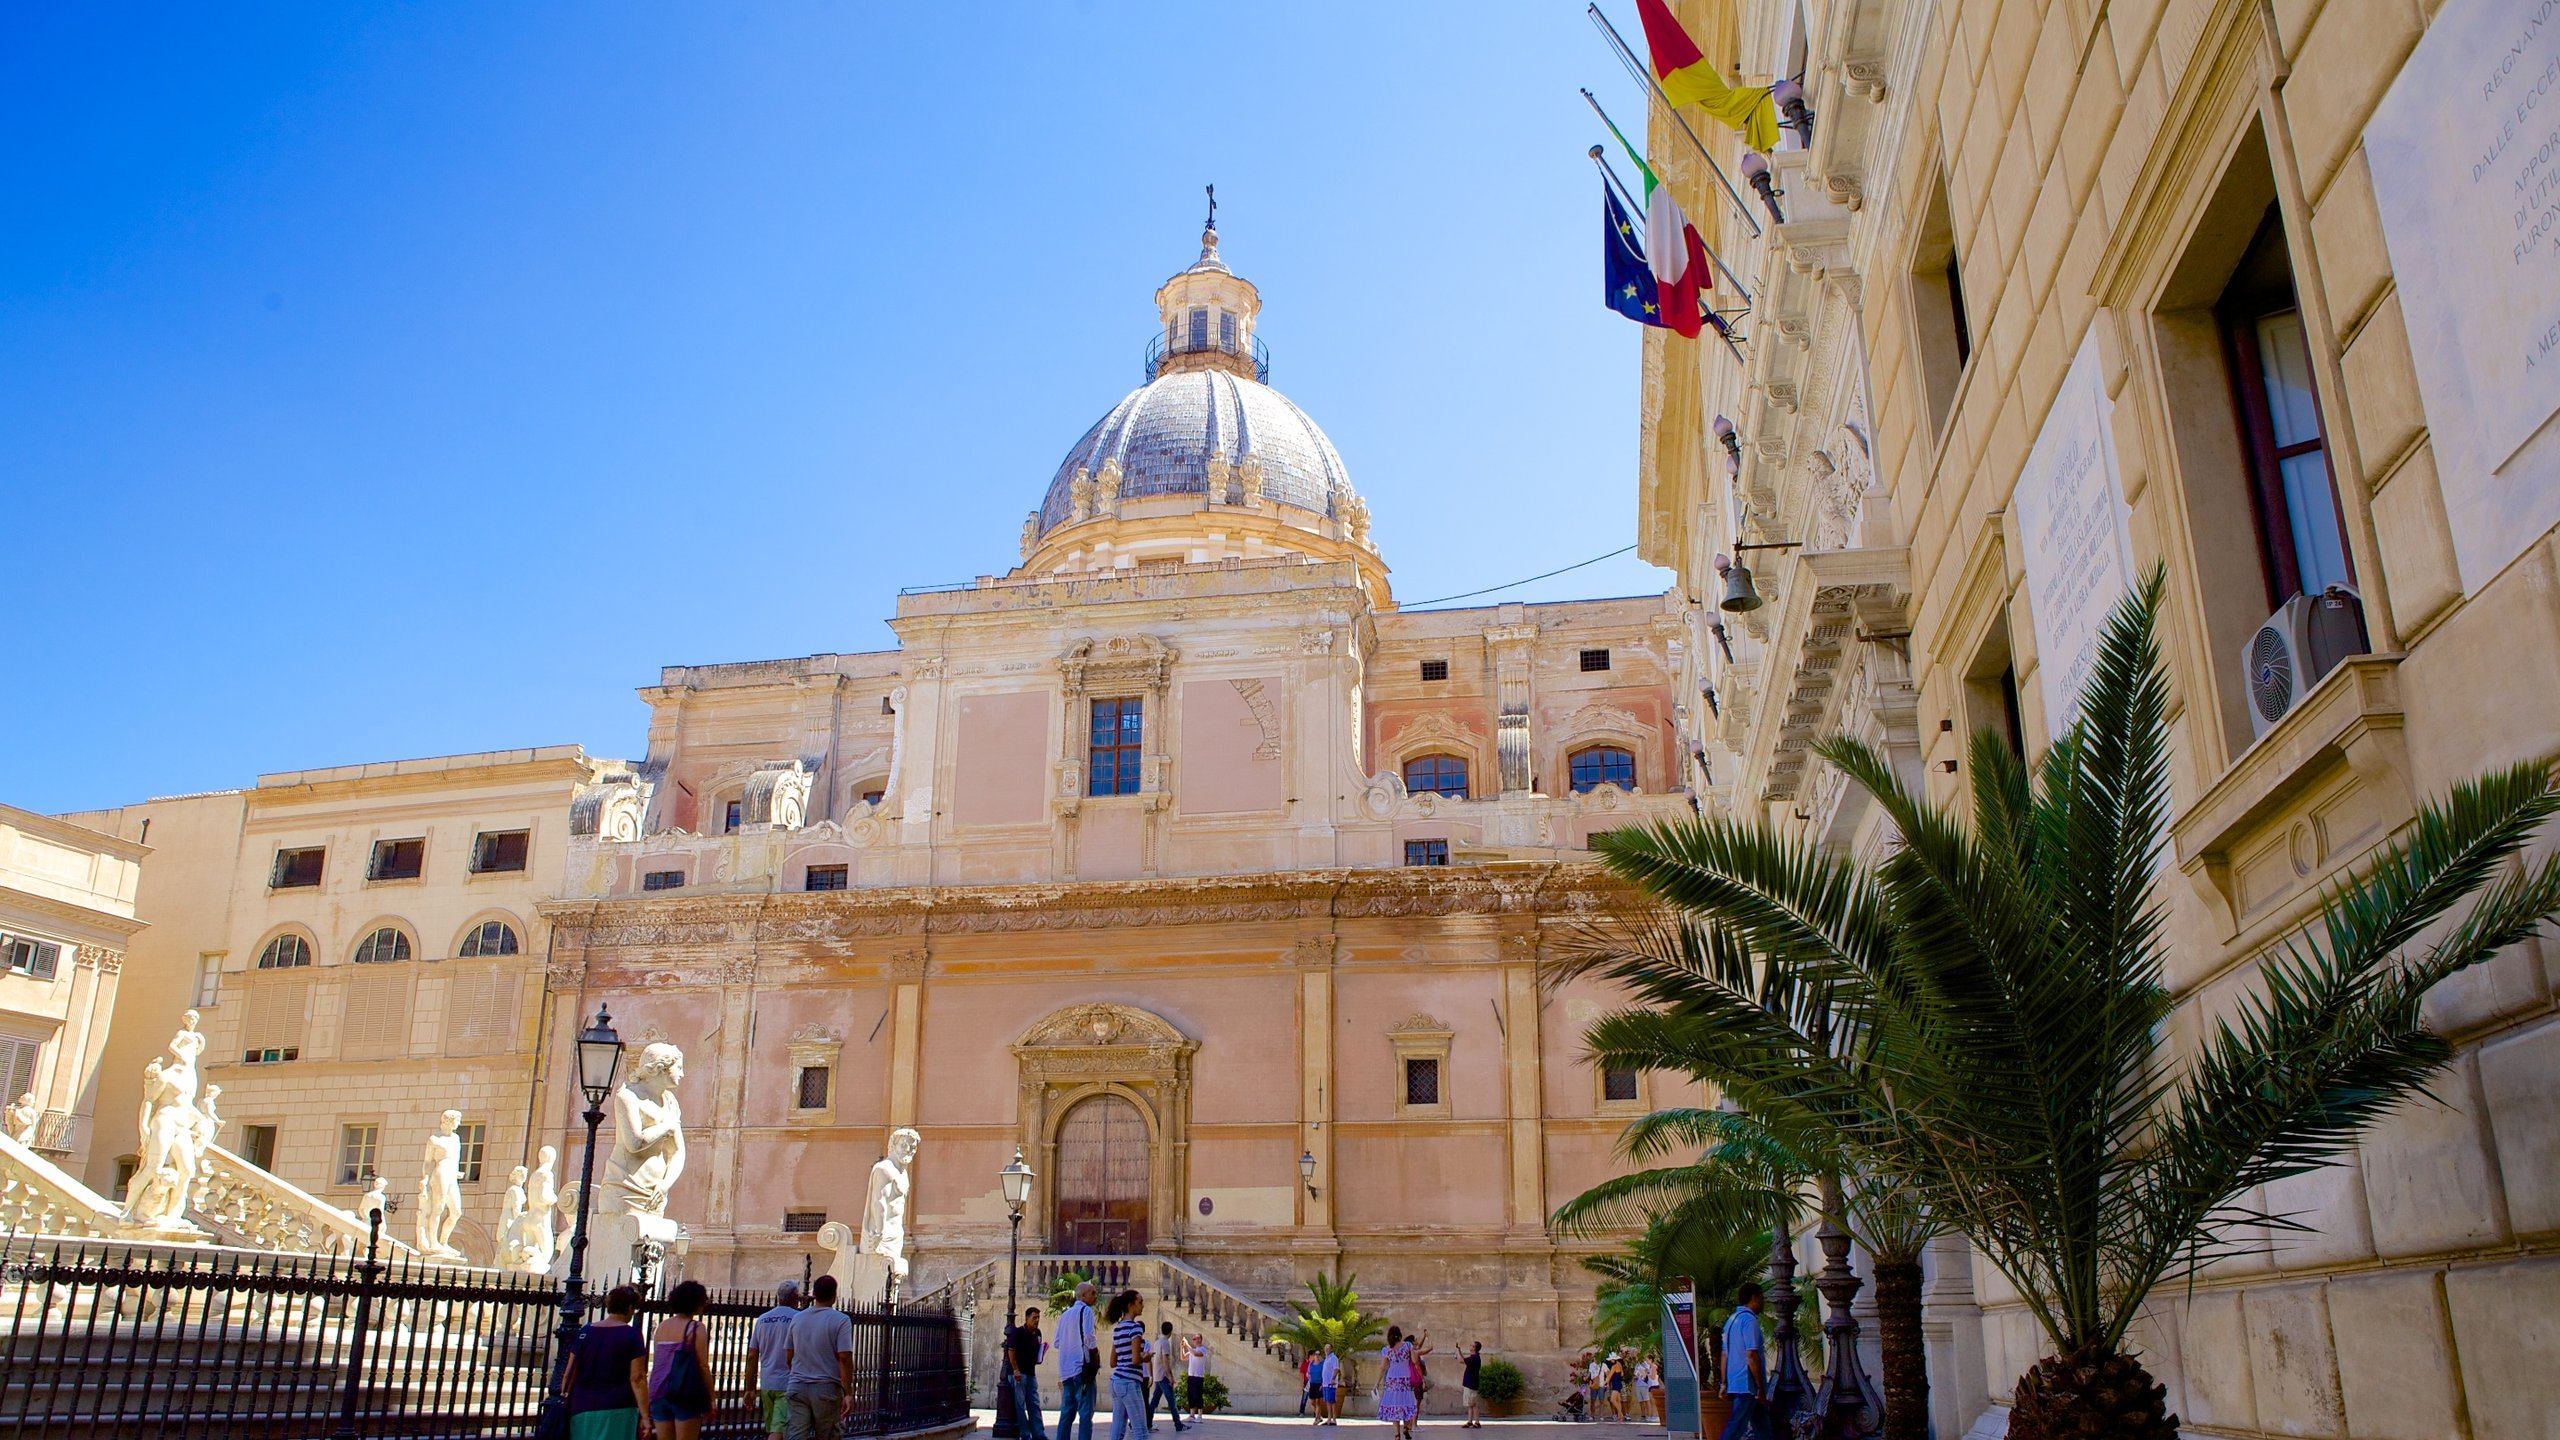 Studio La Rosa Palermo top hotels in palermo from $28 (free cancellation on select